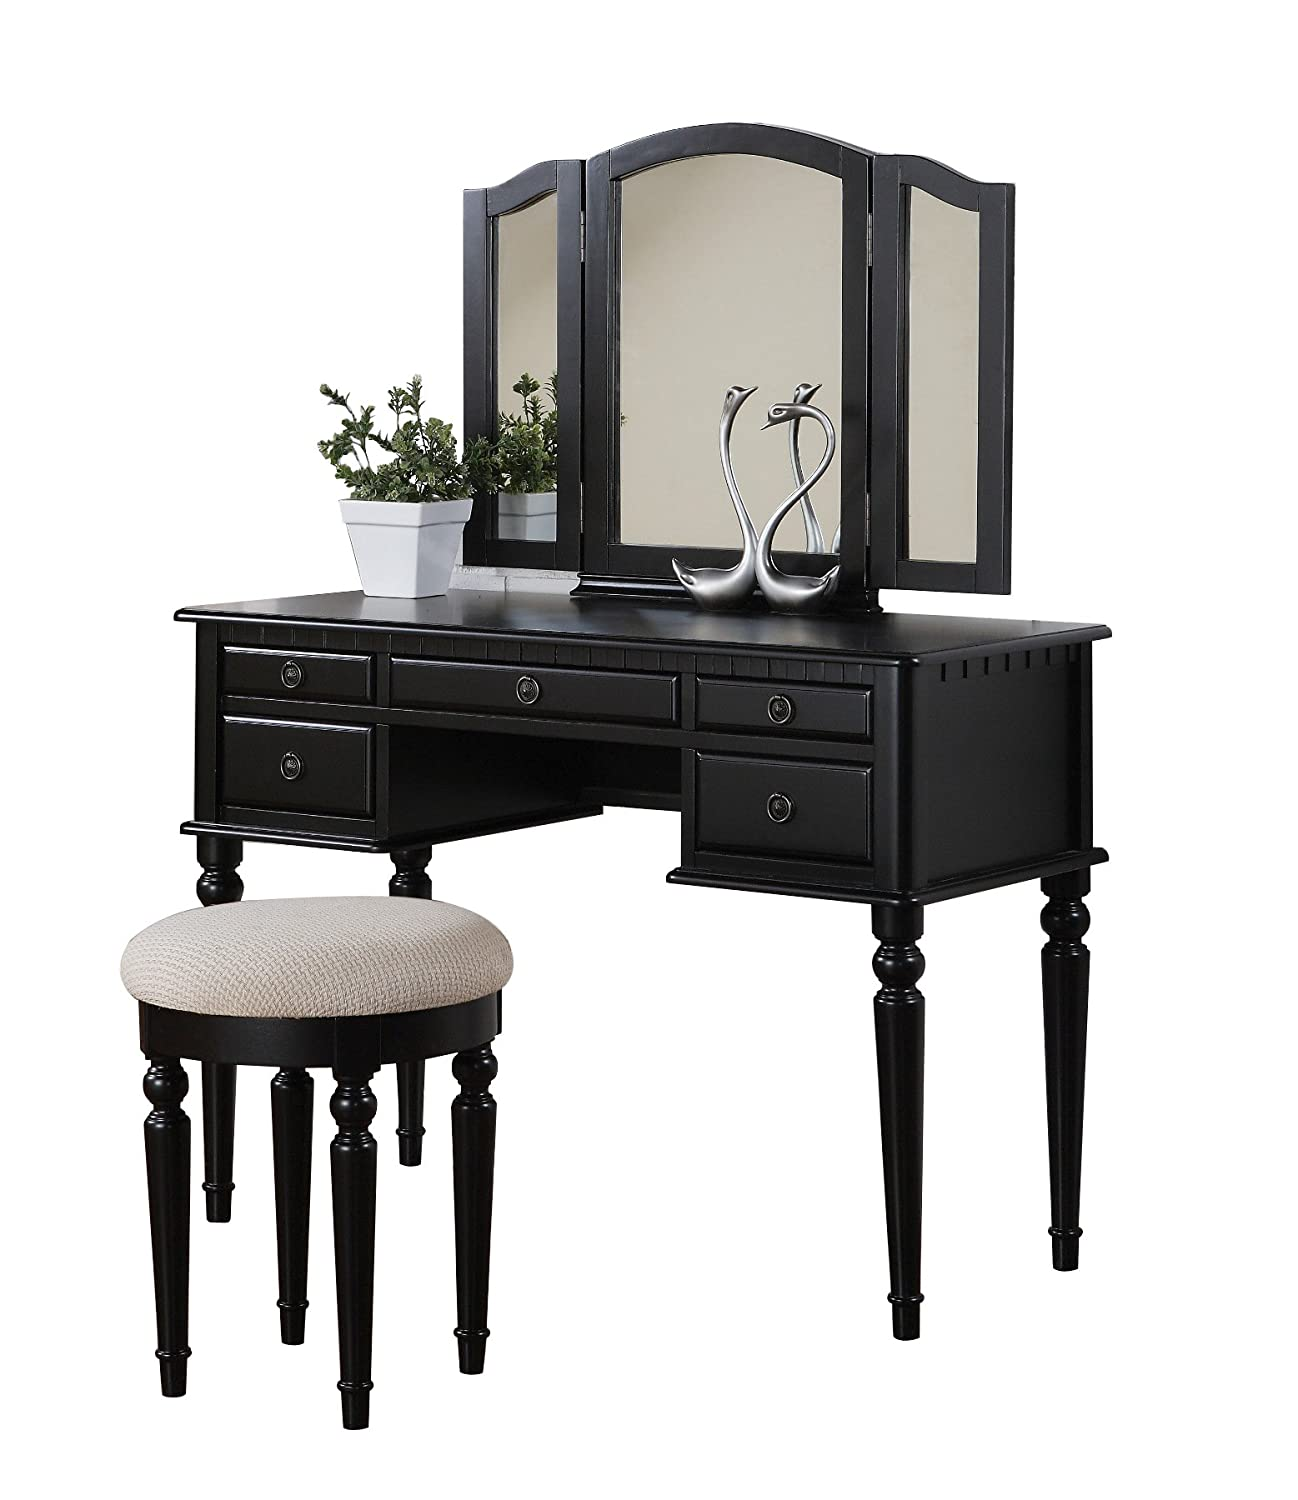 Black Wooden Vanity Bedroom Dresser Makeup Cosmetic Mirror Bedroom Furniture New  eBay